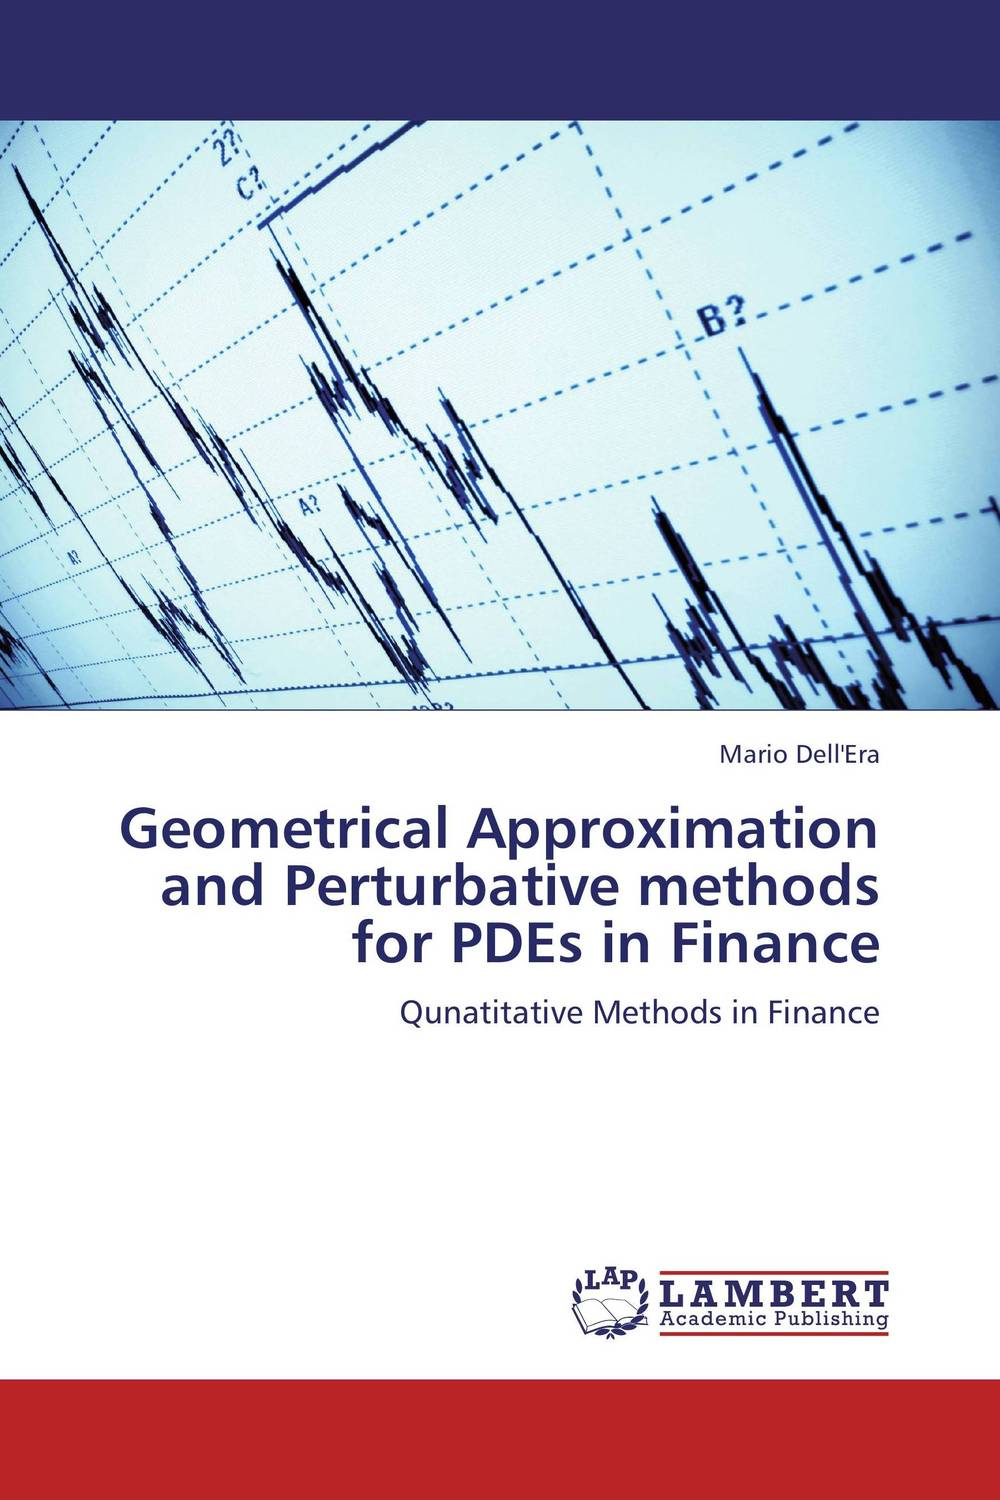 Geometrical Approximation and Perturbative methods for PDEs in Finance analytical and numerical approximation solution of bio heat equation